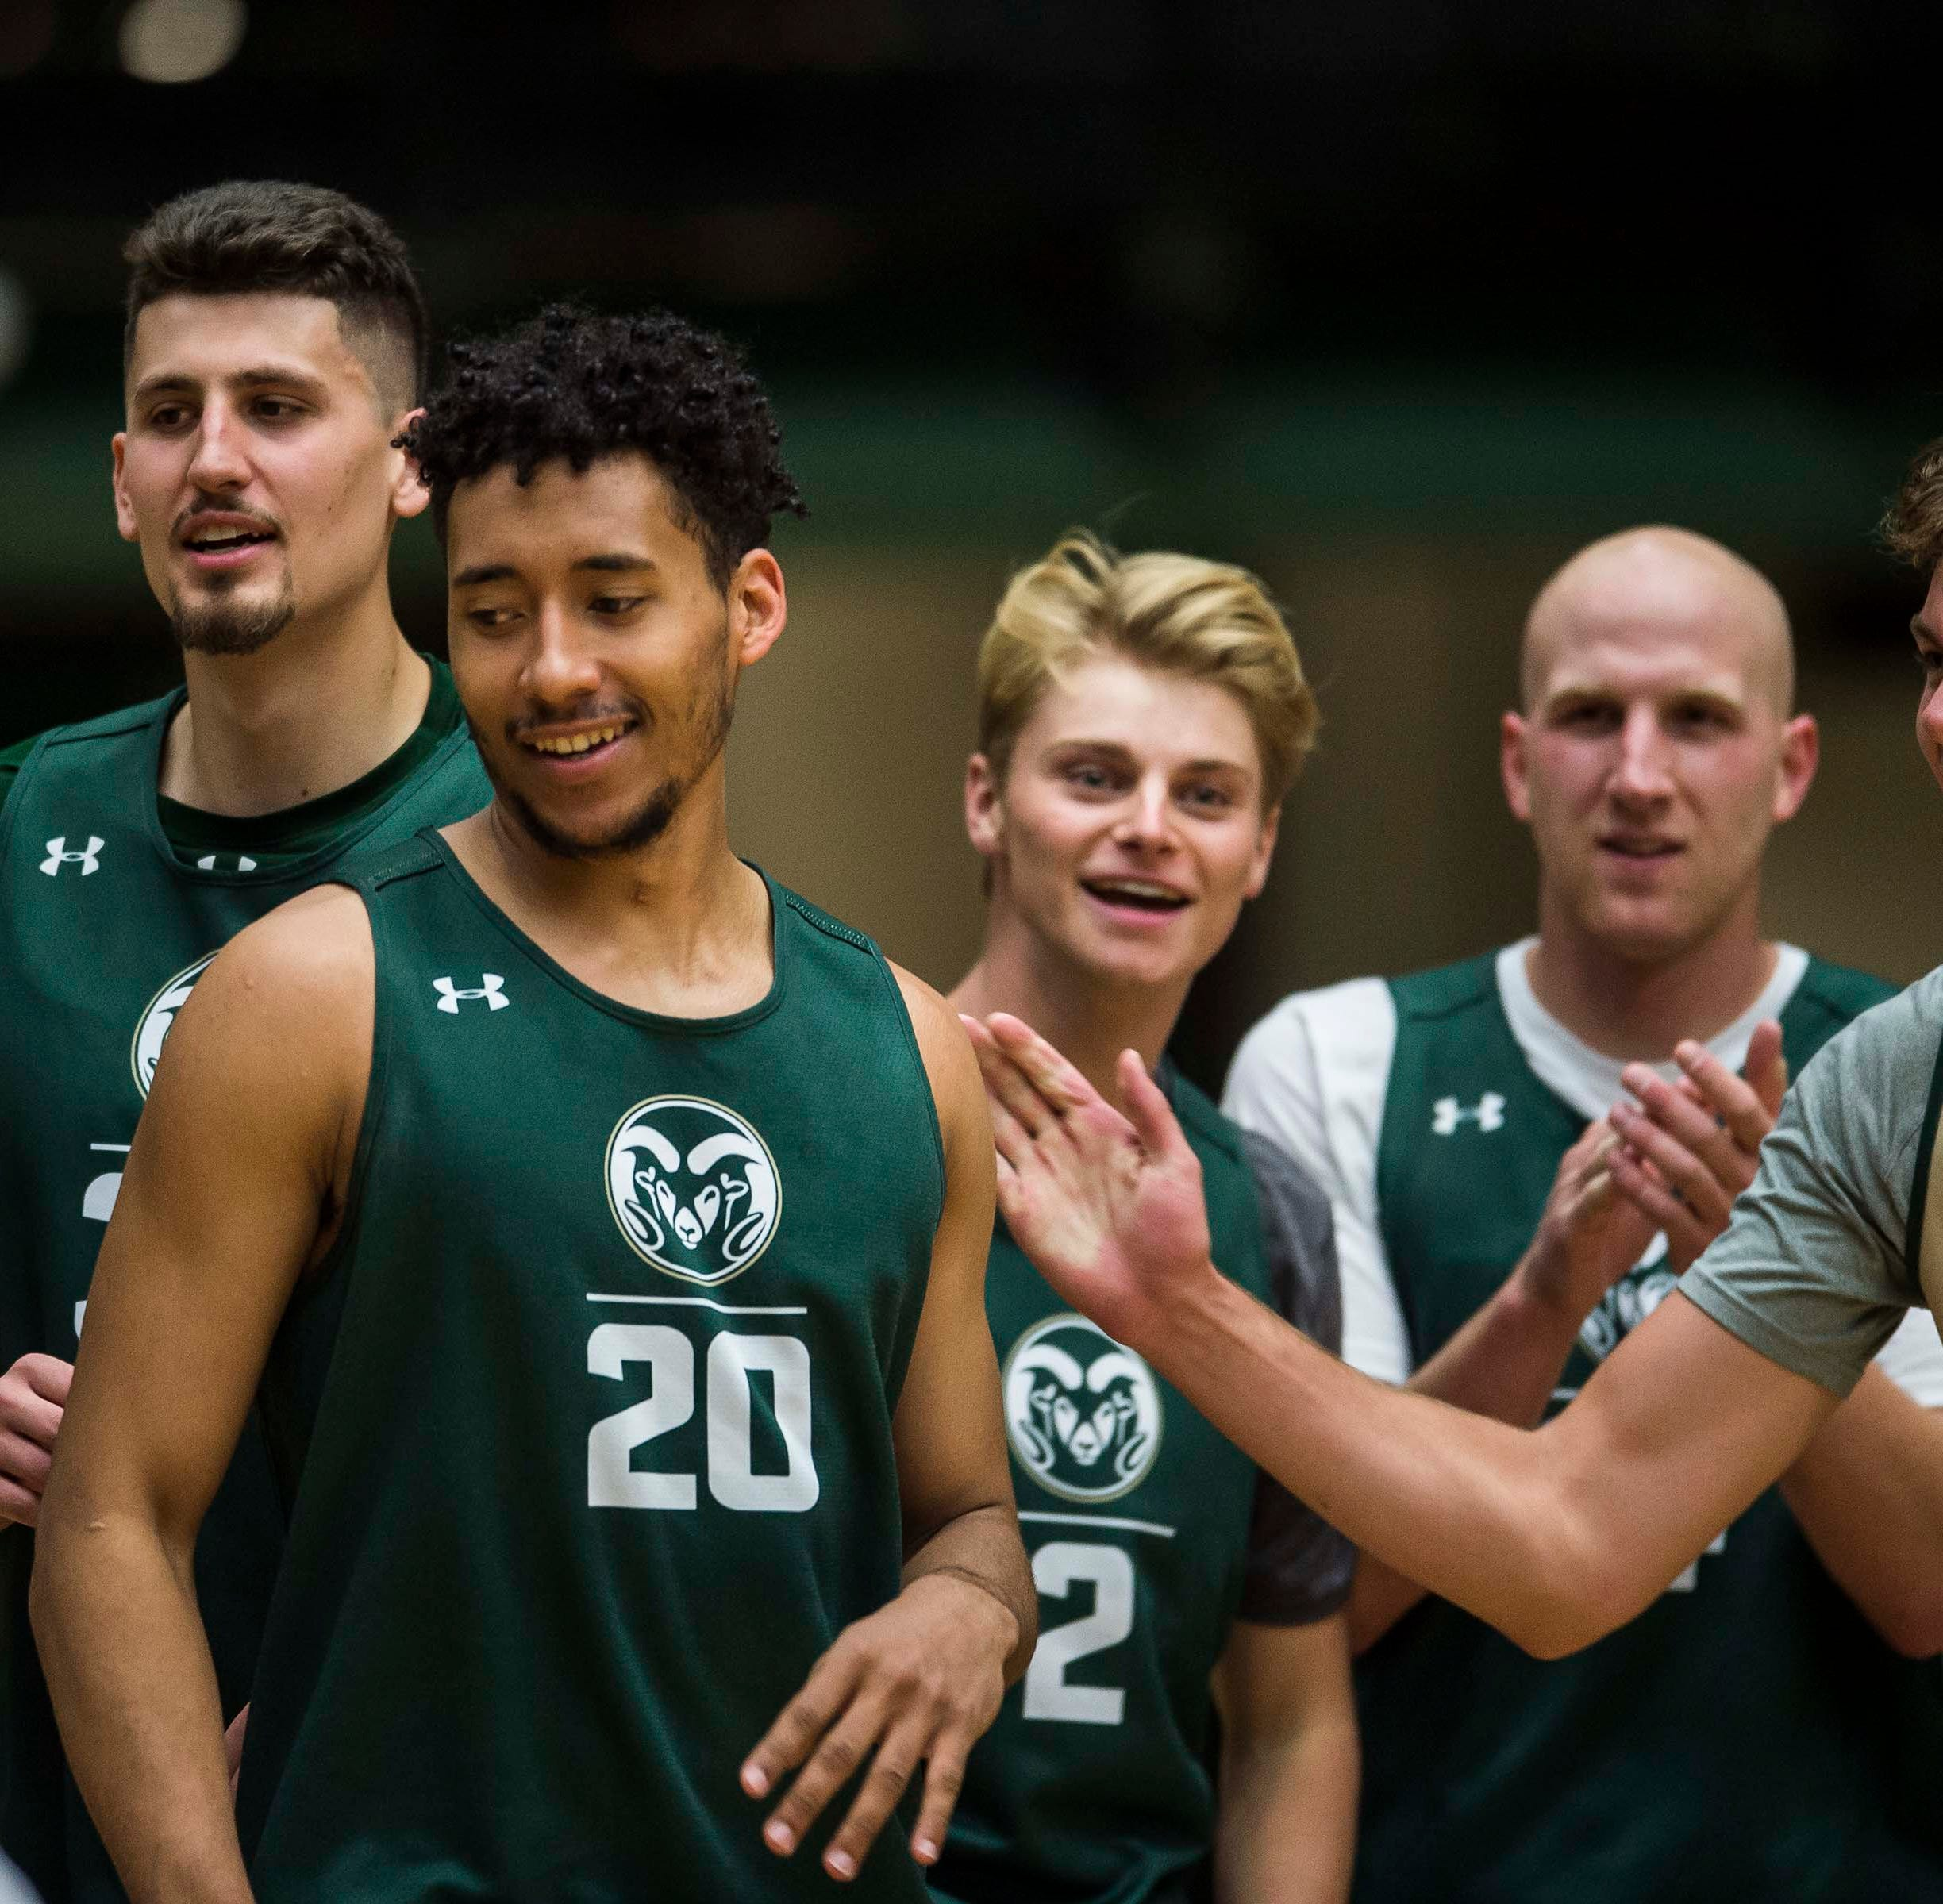 Former Colorado State basketball player Deion James to transfer to Pac-12 school